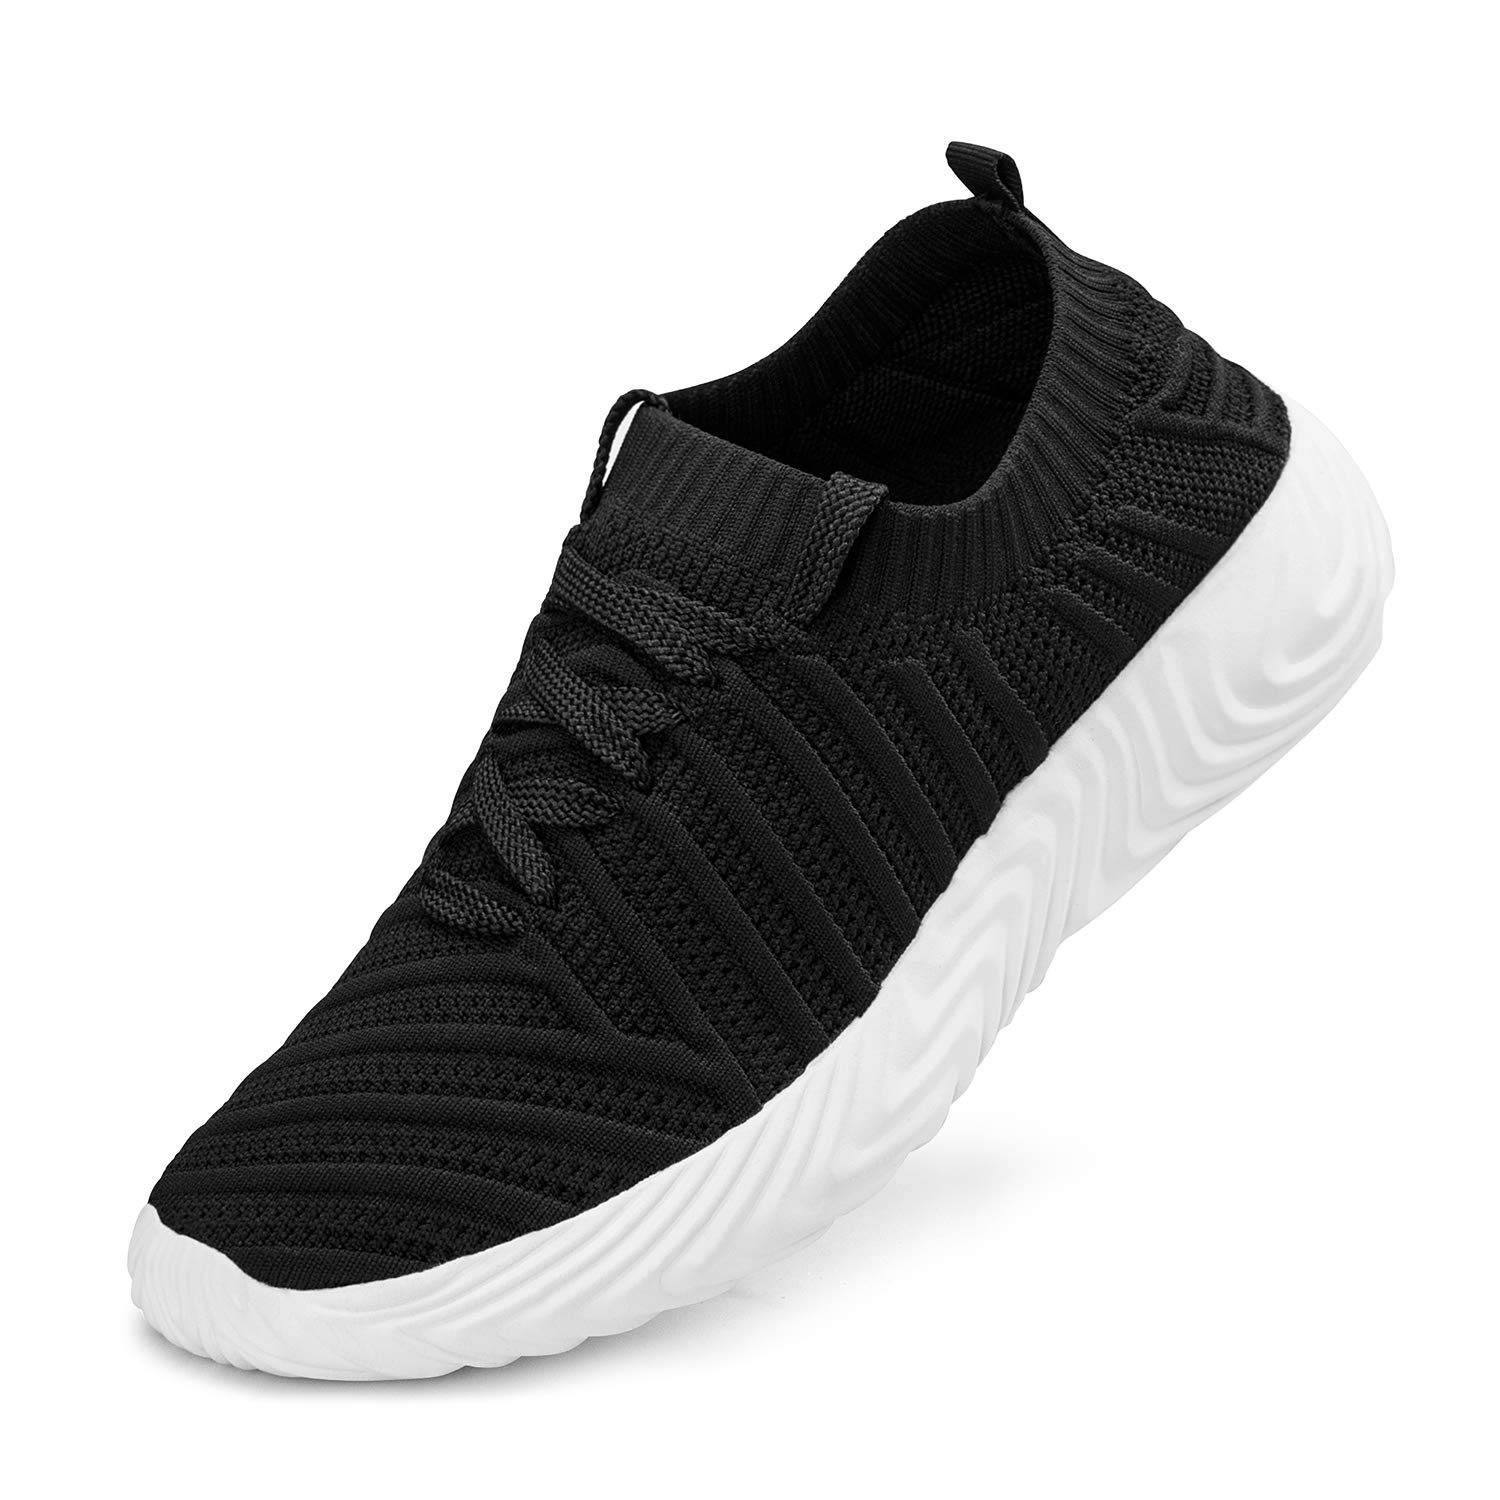 Black White ZOCAVIA Womens Walking shoes Knit Breathable Lightweight Slip On Tennis Running Gym Sneakers